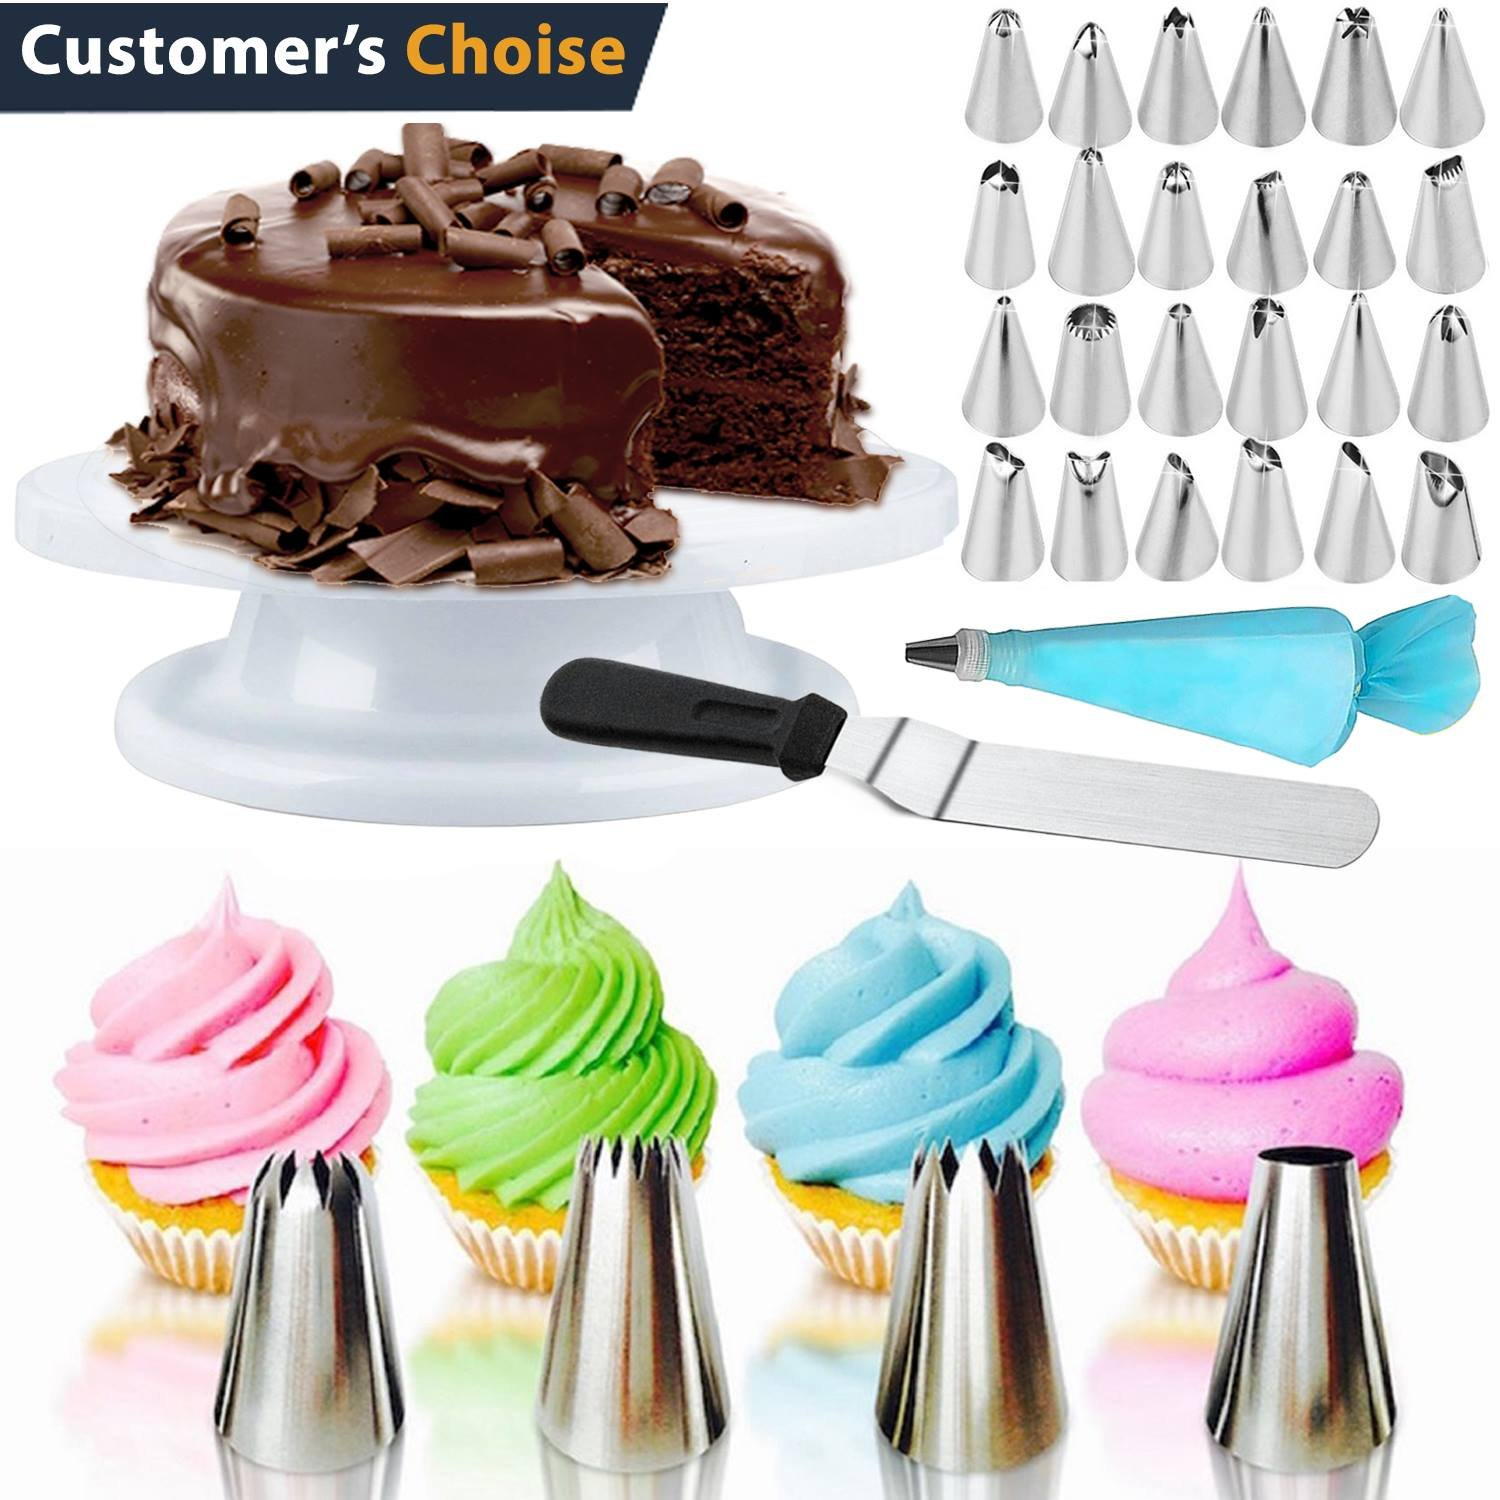 Cake Decorating Supplies 55 pcs -24 Icing Tips, 1 Cake Turntable, 1 Pastry Bag, 1 Couplers, 1 Spatulas, 1 Flower Lifter, 1 Brush, 1 Cake Pen, 1 Fondant Smoother, 3 Cake Scrapers, 20 Disposable bags